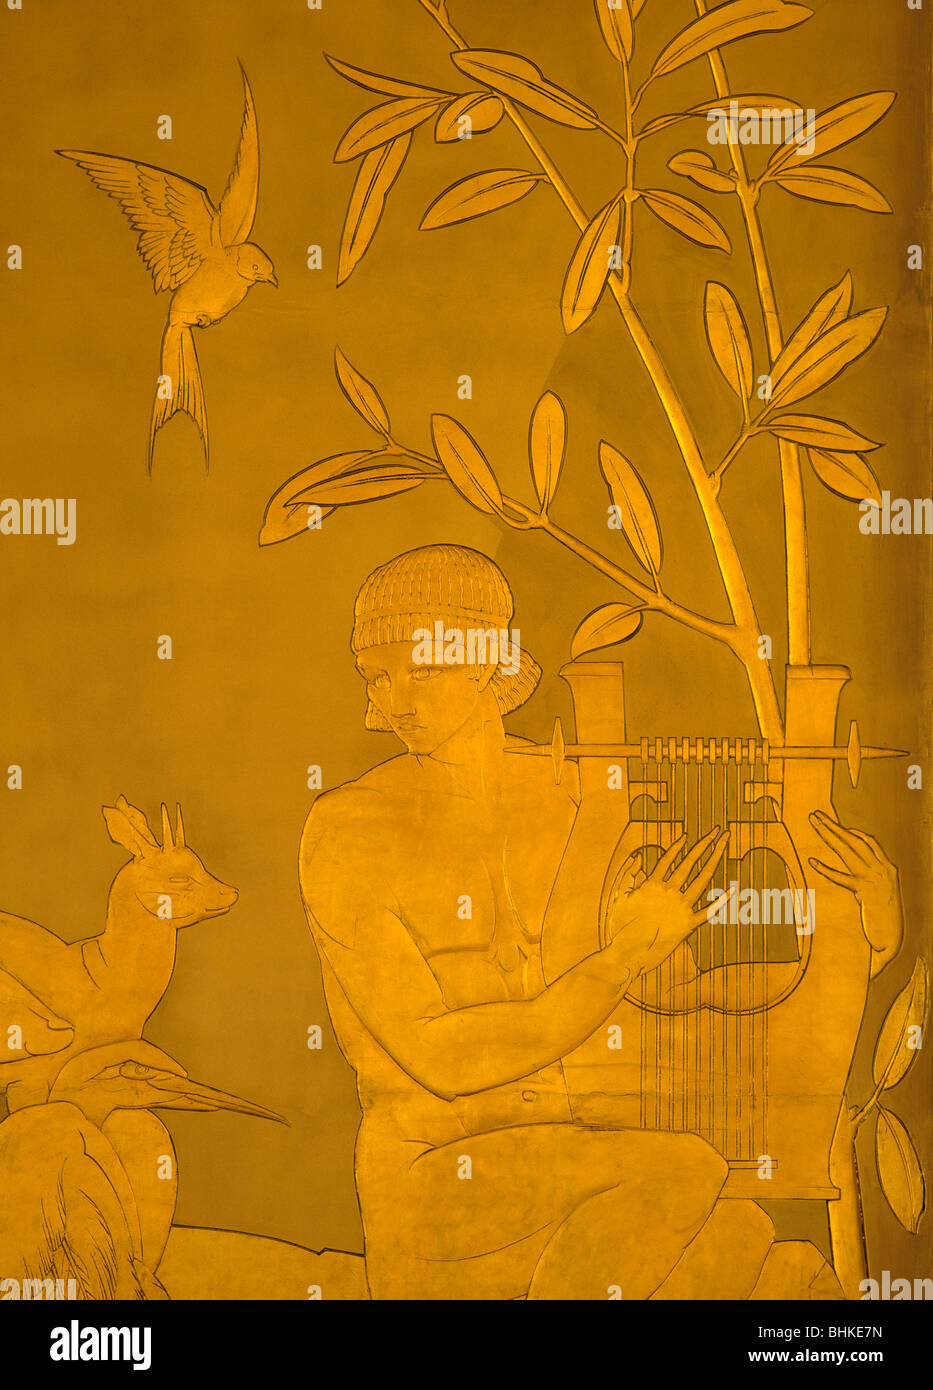 Art Deco frieze by Edmund C. Thompson at the Philharmonic Hall in Liverpool. - Stock Image